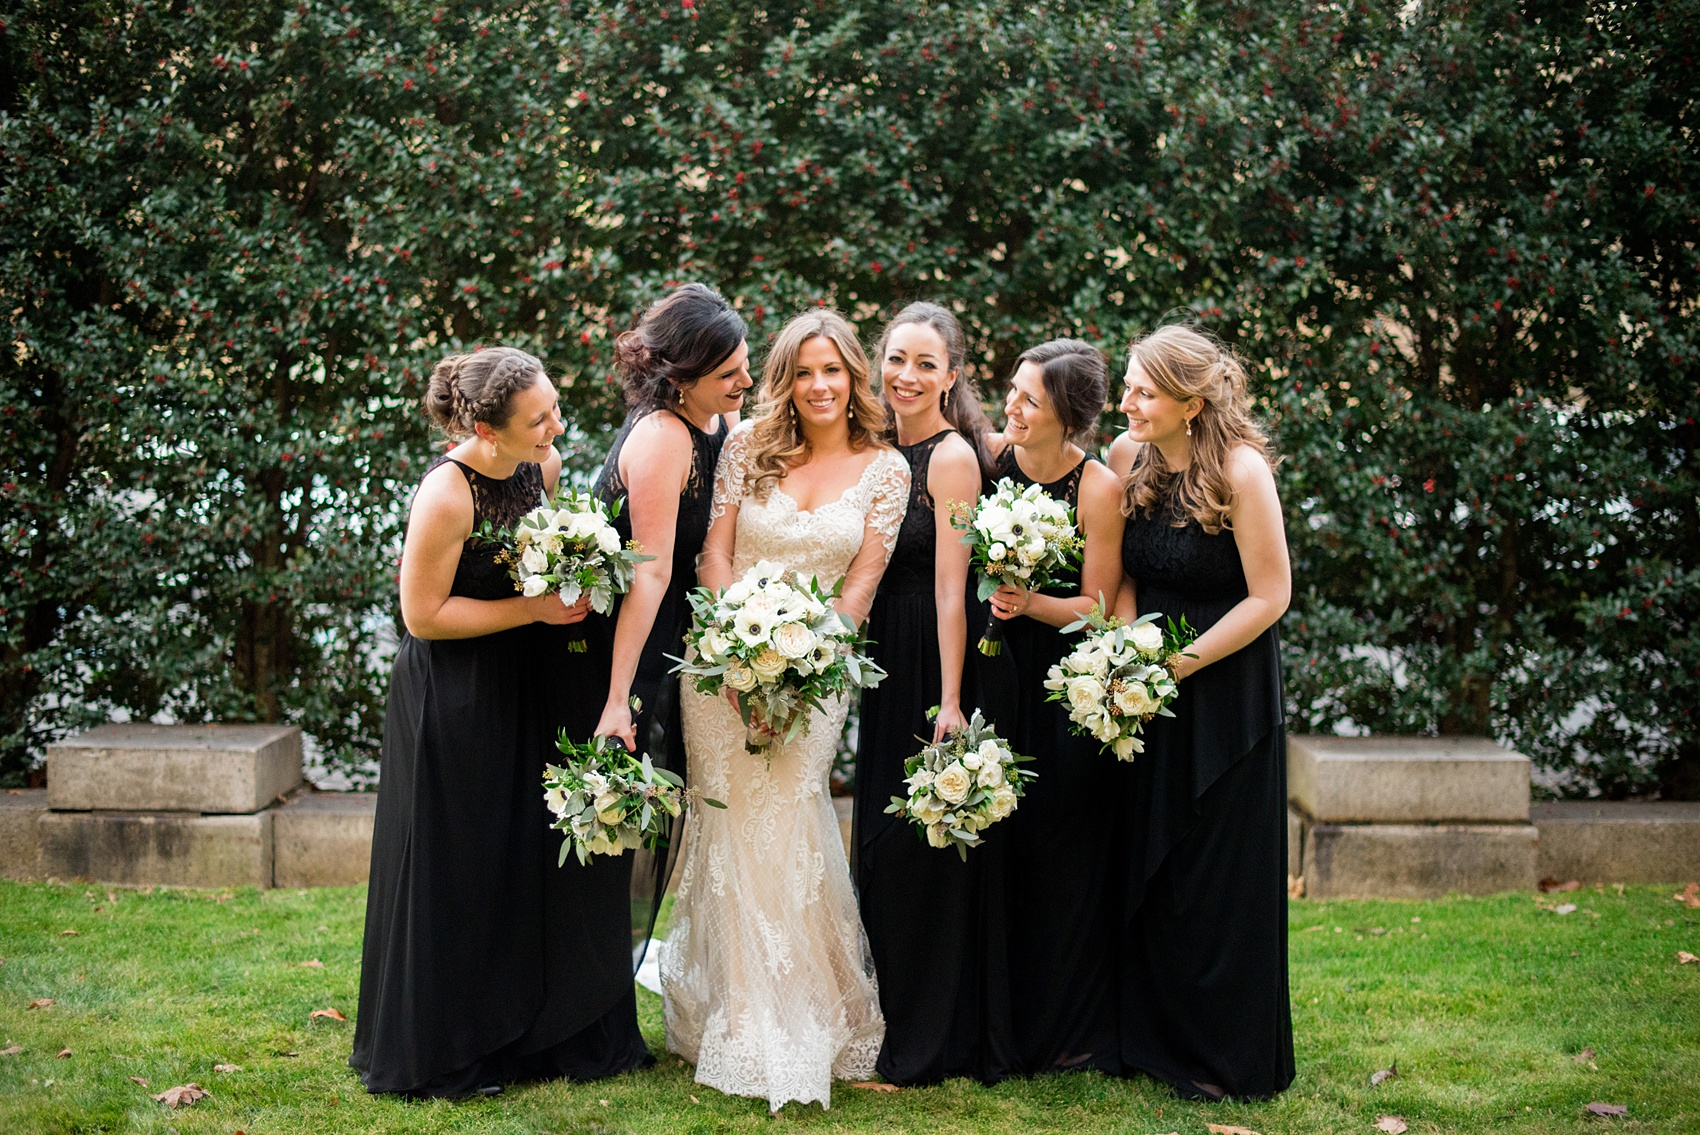 Wedding photos at Sleepy Hollow Country Club for a winter reception in January by Mikkel Paige Photography. The bridal party is pictured with white shawls and black lace gowns, surrounding the bride for her winter wedding.